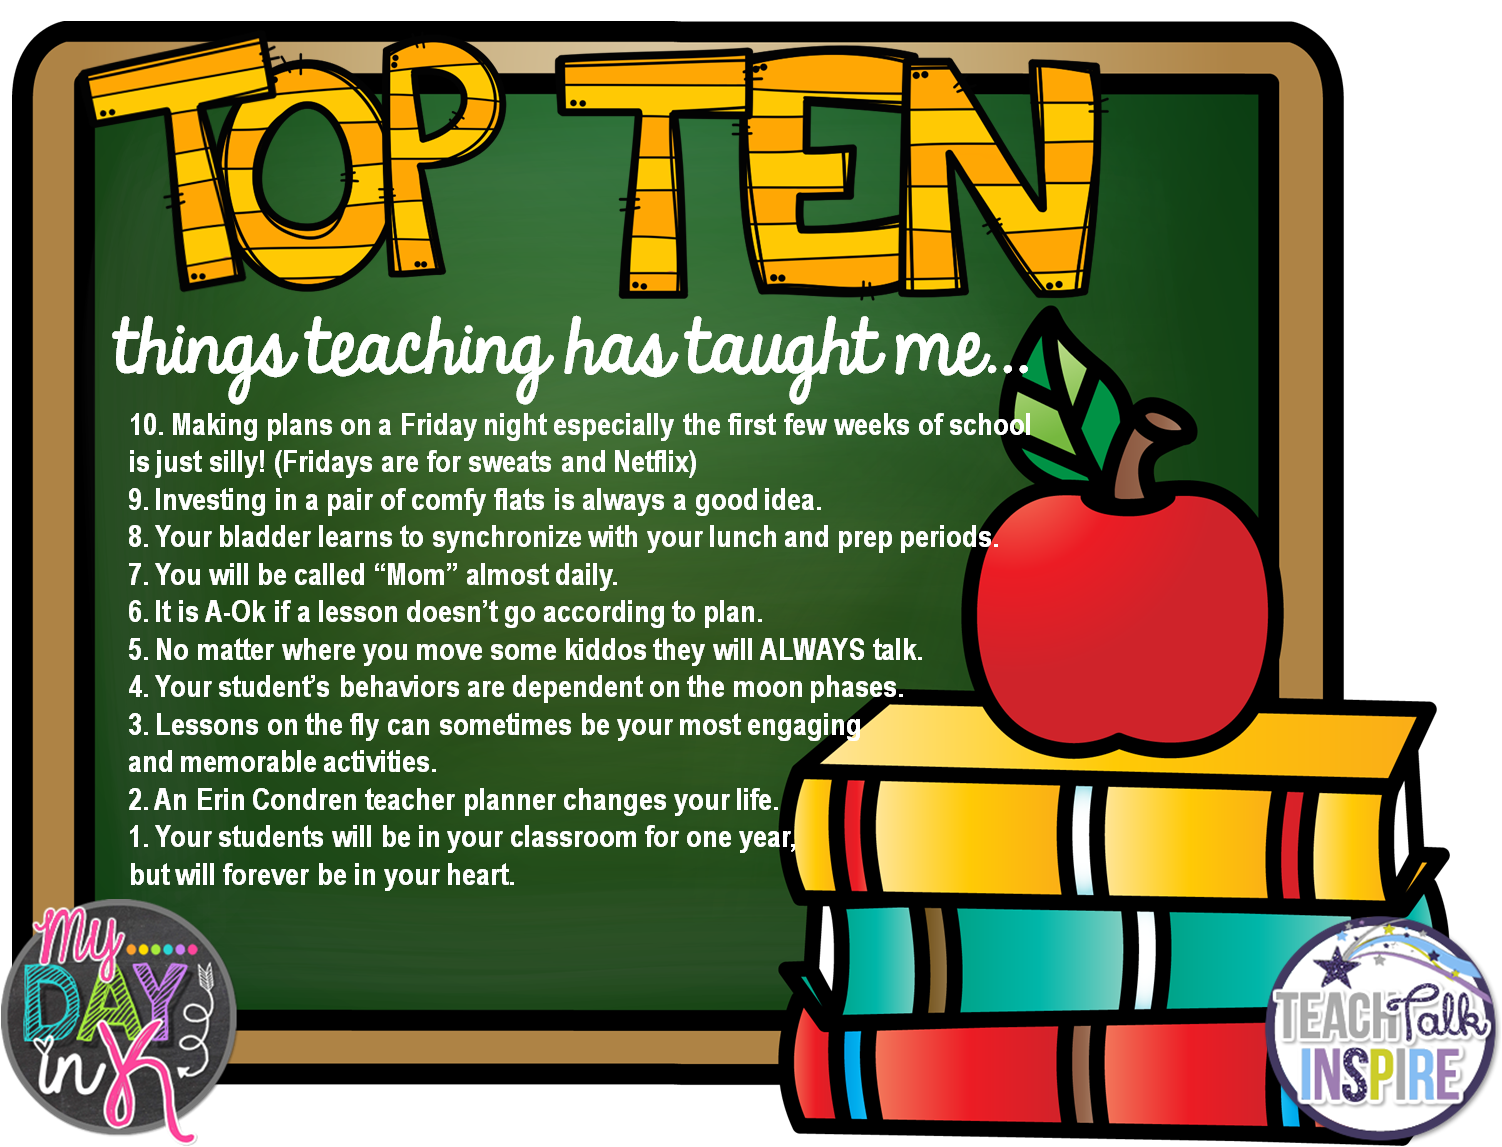 Tell all Tuesday: Top Ten Things Teaching has Taught me! - MyDayinK